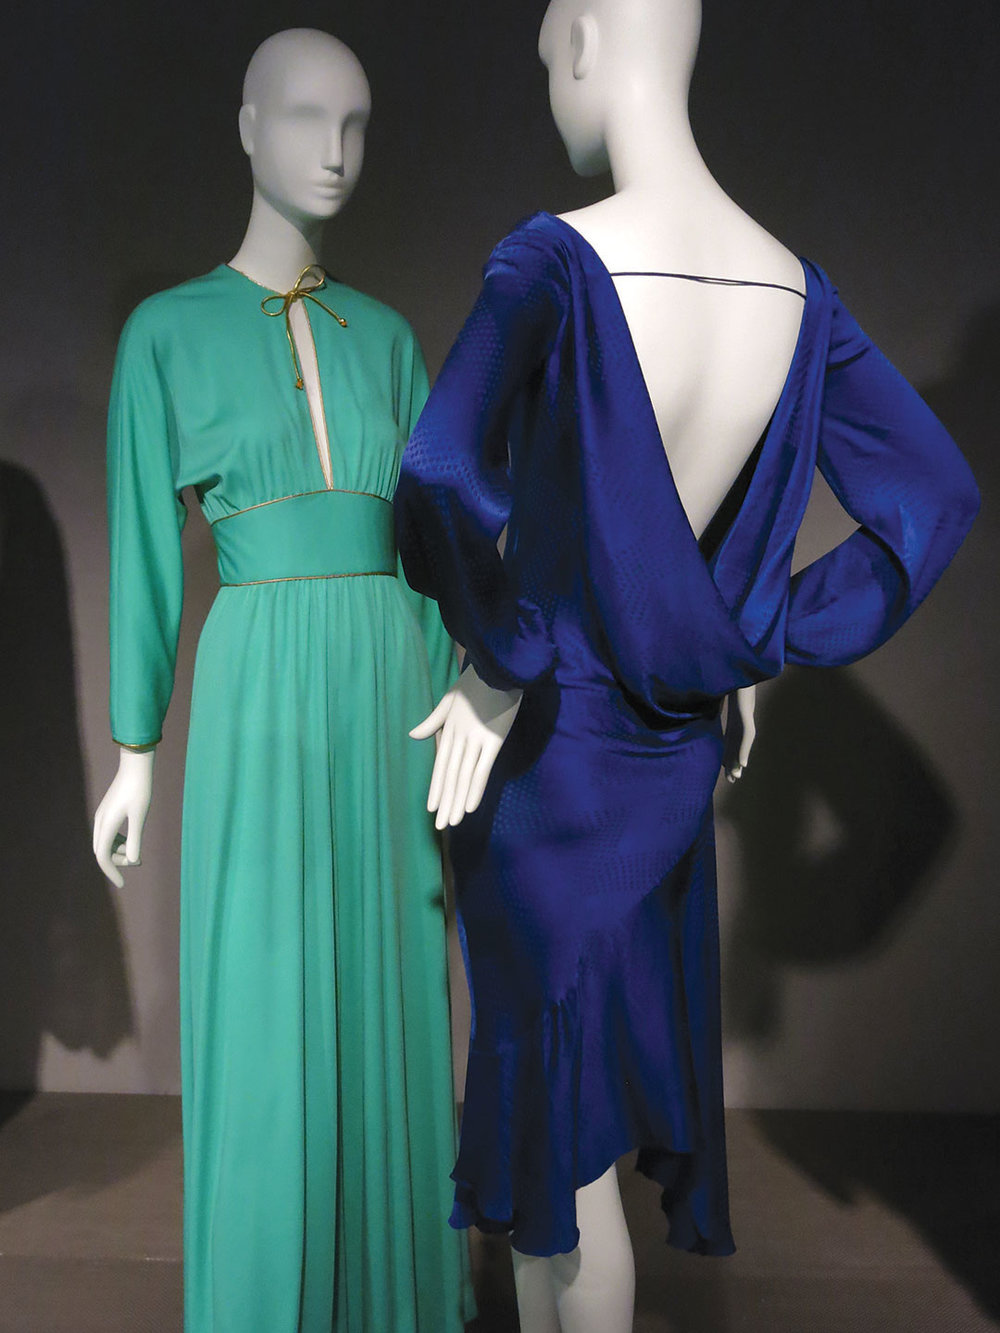 JUMPSUIT by James Daugherty of polyester matte jersey, circa 1974, United States. DRESS by Jon Haggins of silk, 1980-1985, United States.